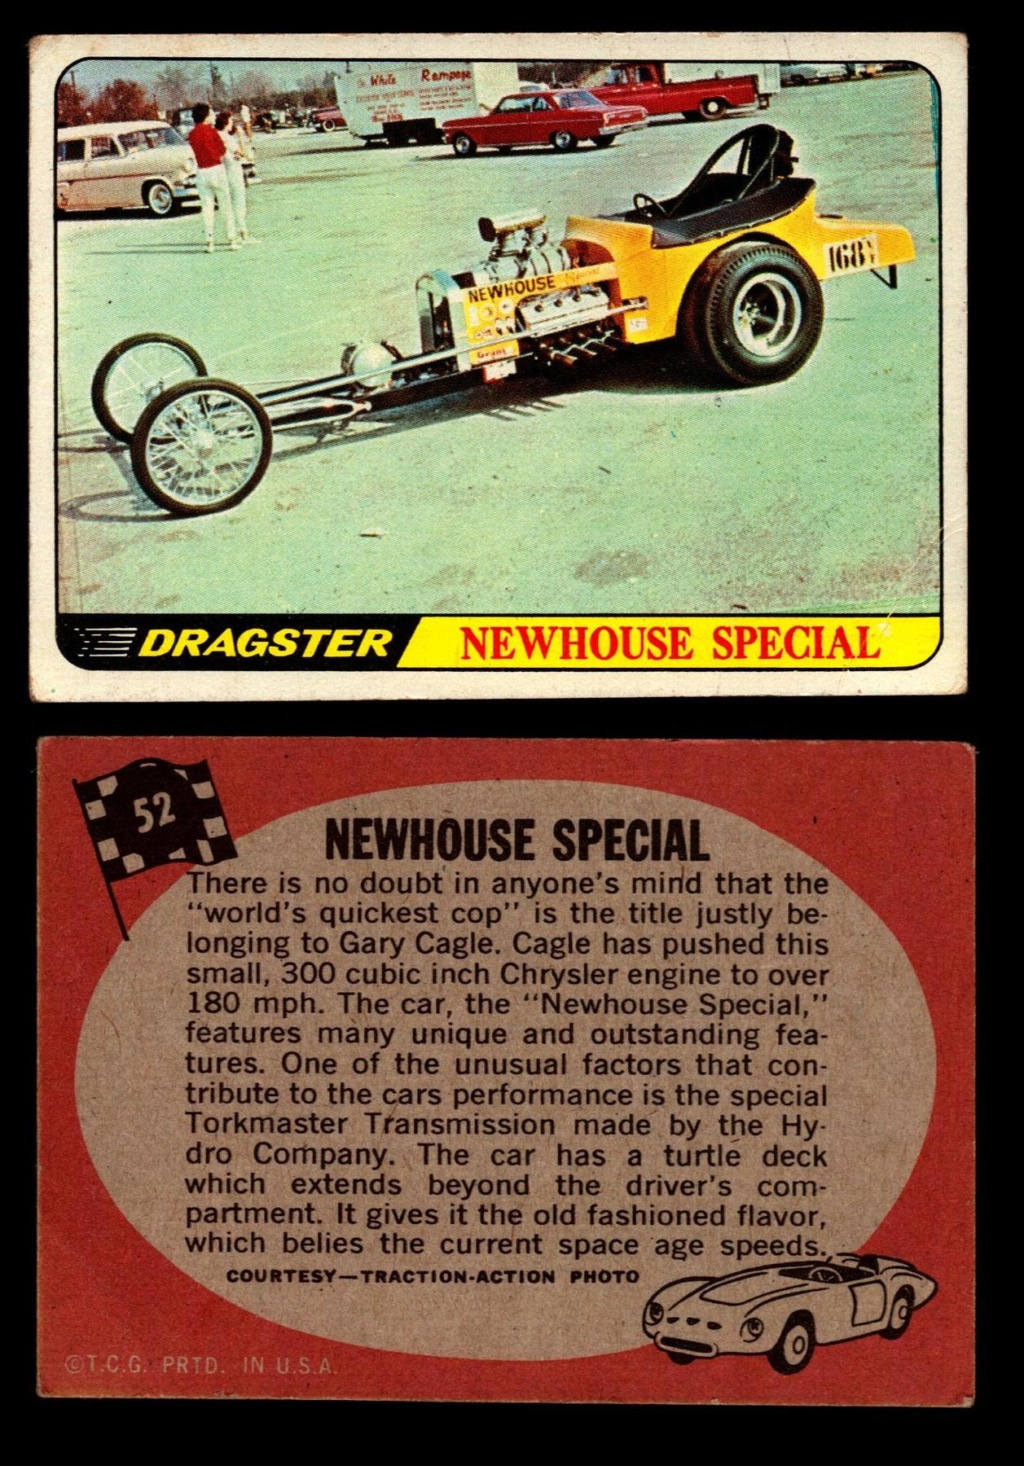 Hot Rods Topps - Vintage Trading Cards 1968 - Custom car - Dragster - Racer - Dream car - Barris Kustom City - Ed Roth Darrill Starbird, Gene Winfield, Bill Cuchenberry - Page 2 52_f5810